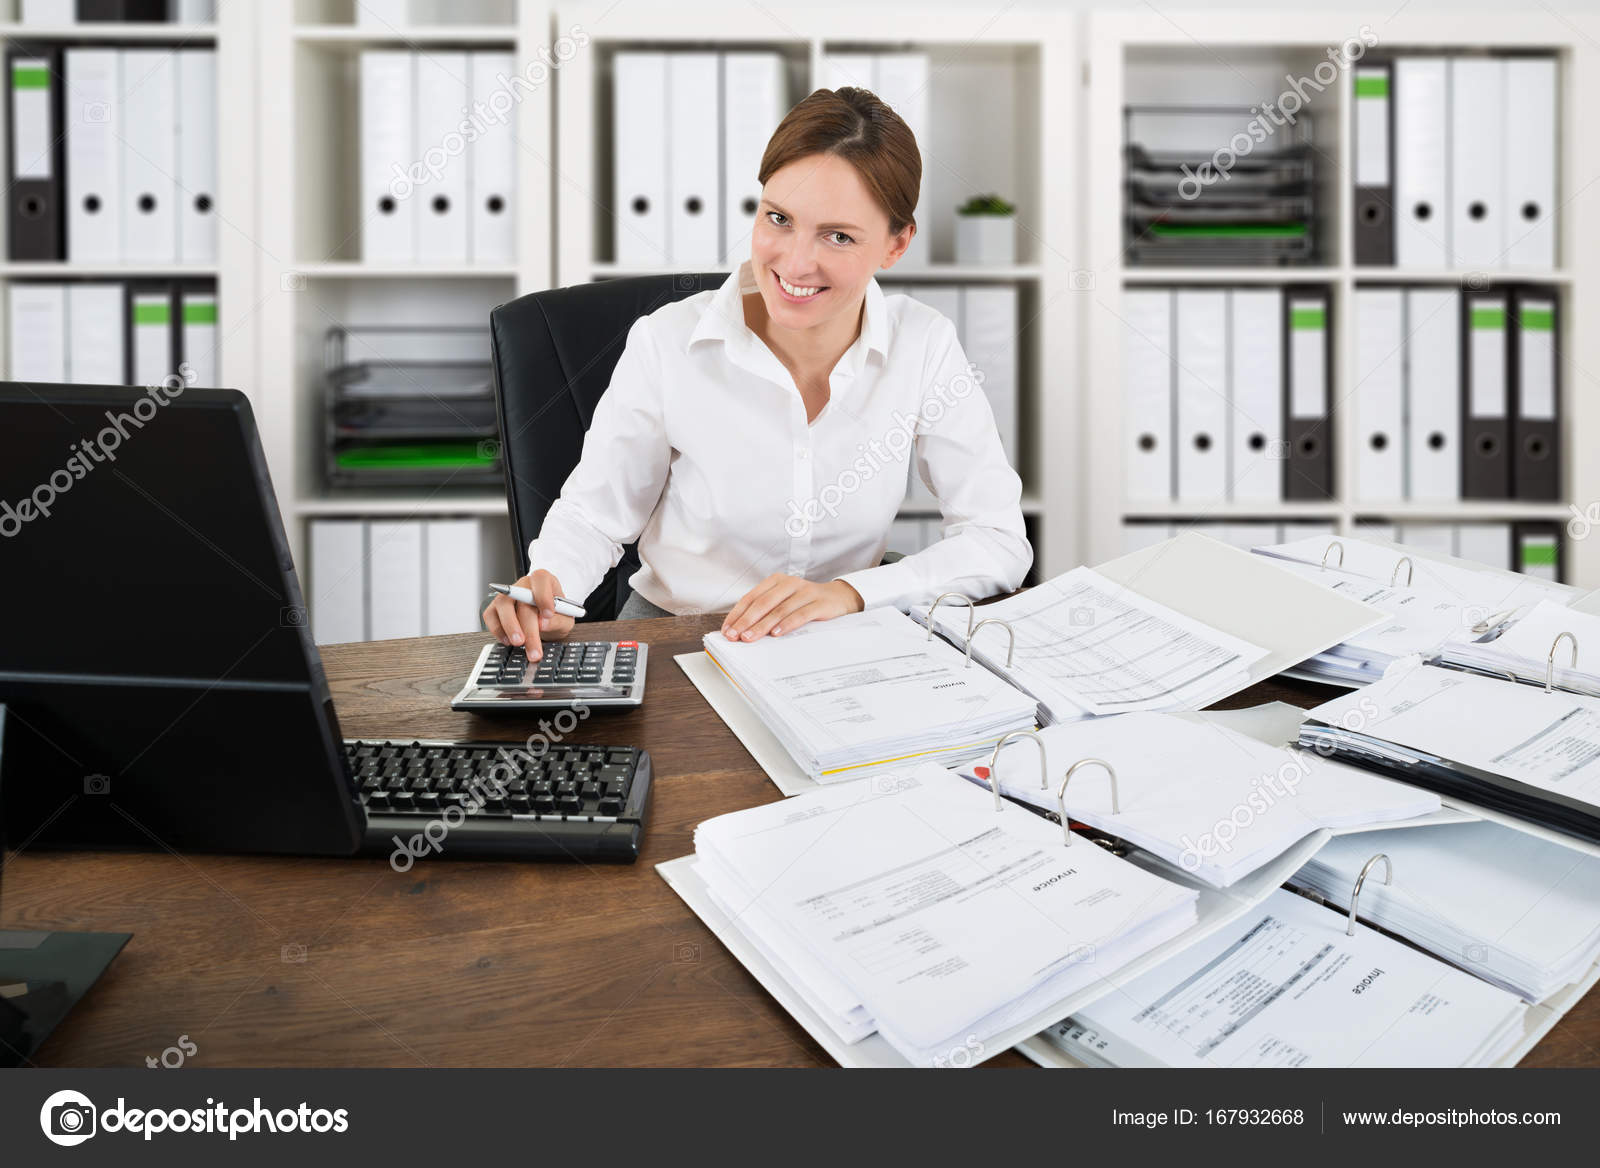 Accountant Working In Office U2014 Stock Photo